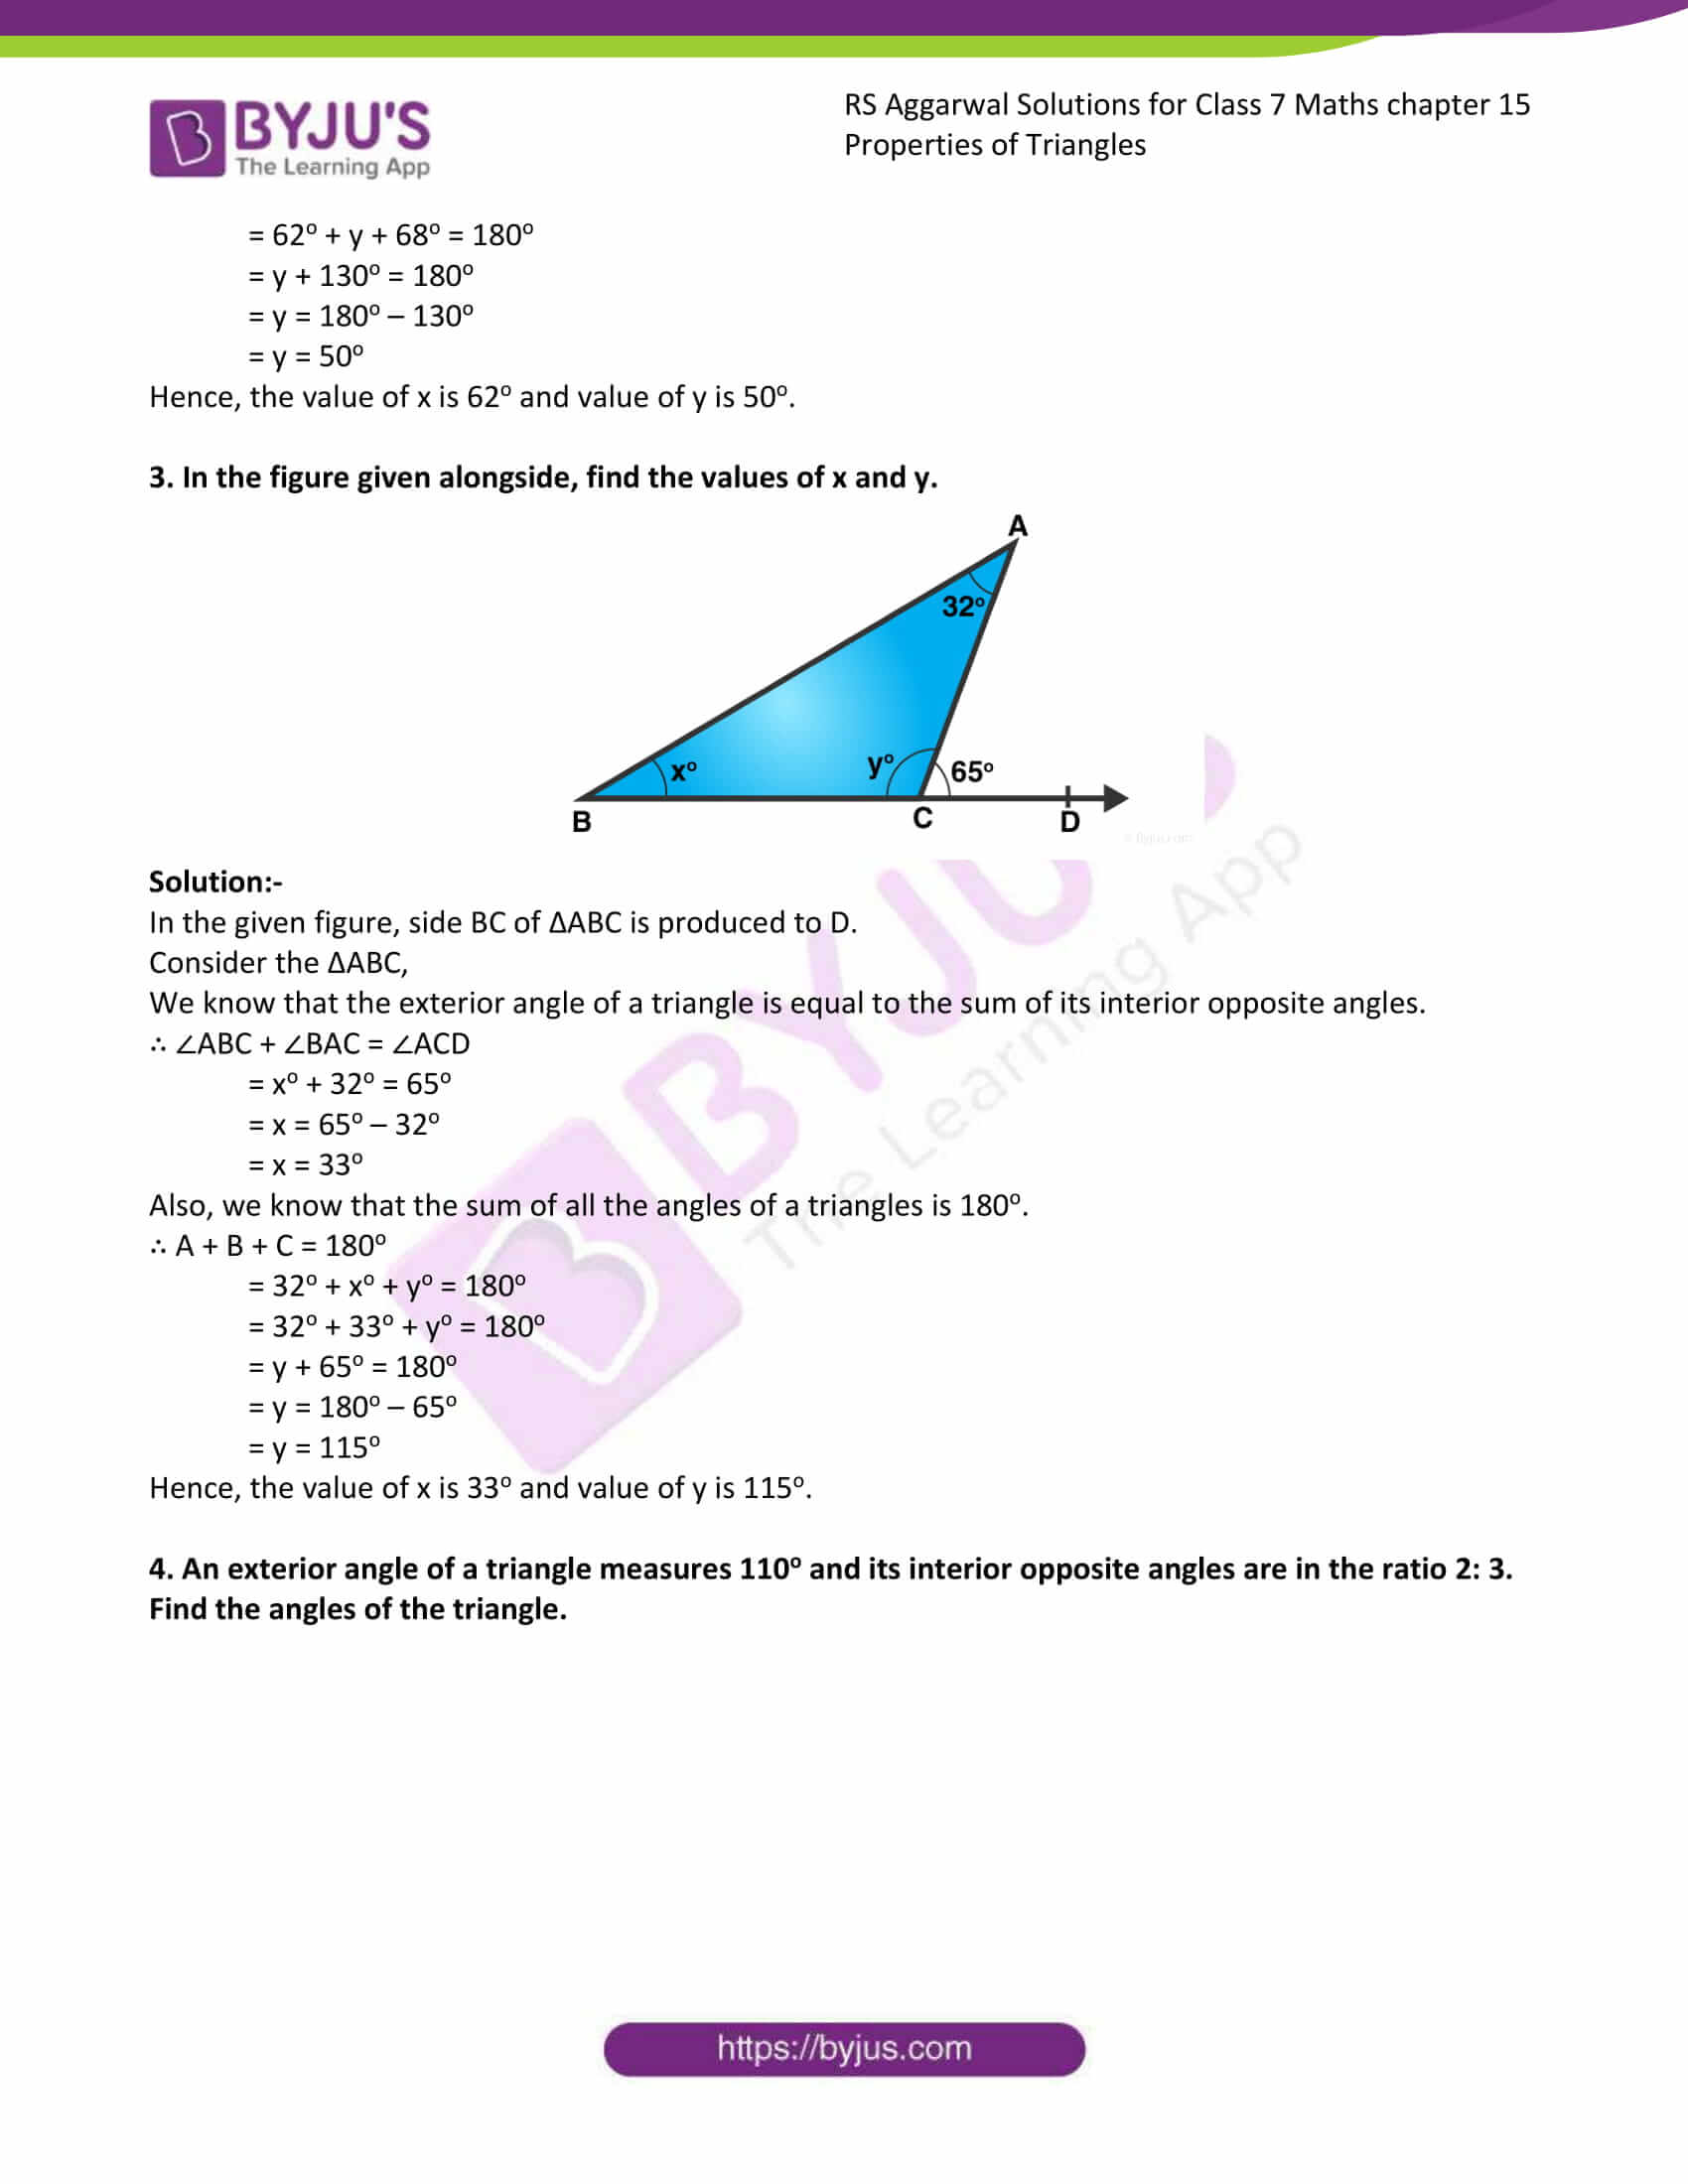 RS Aggarwal Solutions Class 7 Maths Chapter 15 Exercise 15B Free Solutions 05